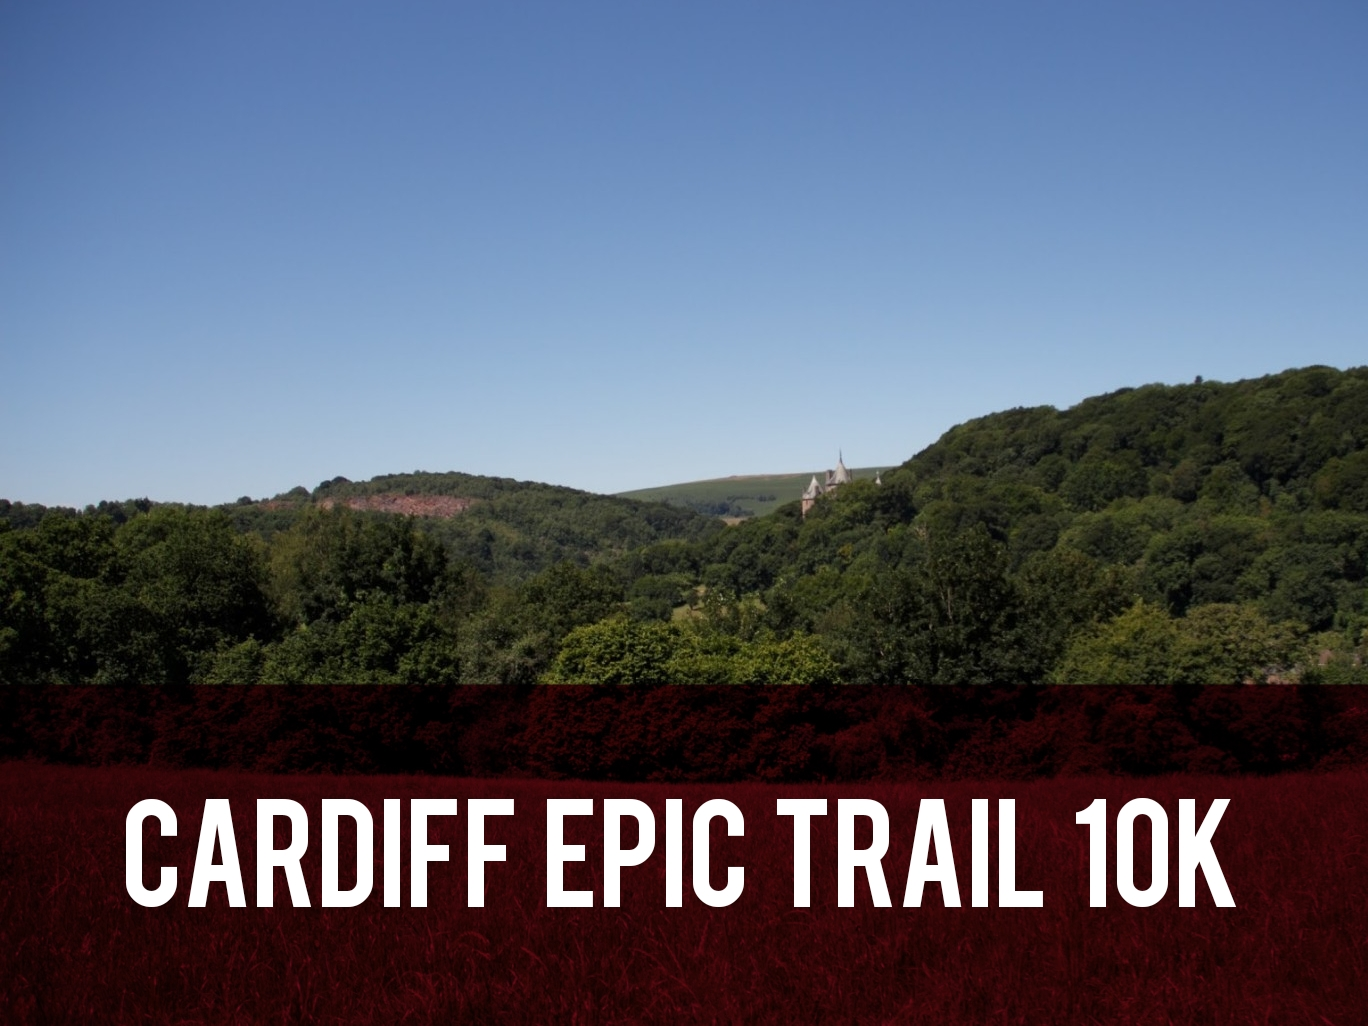 Cardiff Epic Trail 10k header